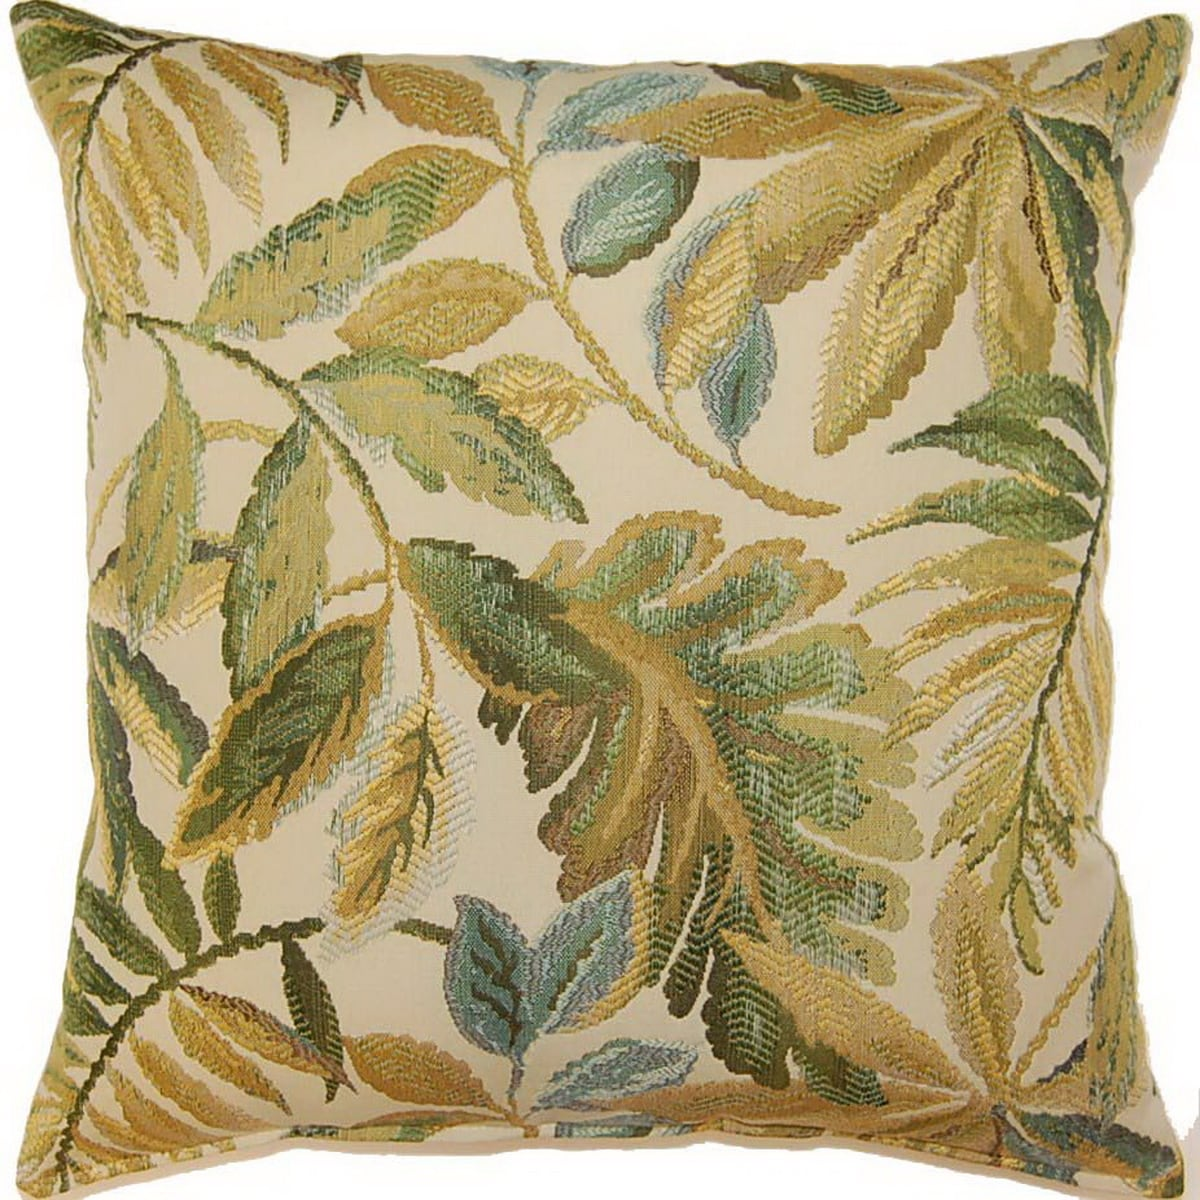 Fox Hill Trading Mauan Kea Breeze 17-inch Throw Pillows (Set of 2)